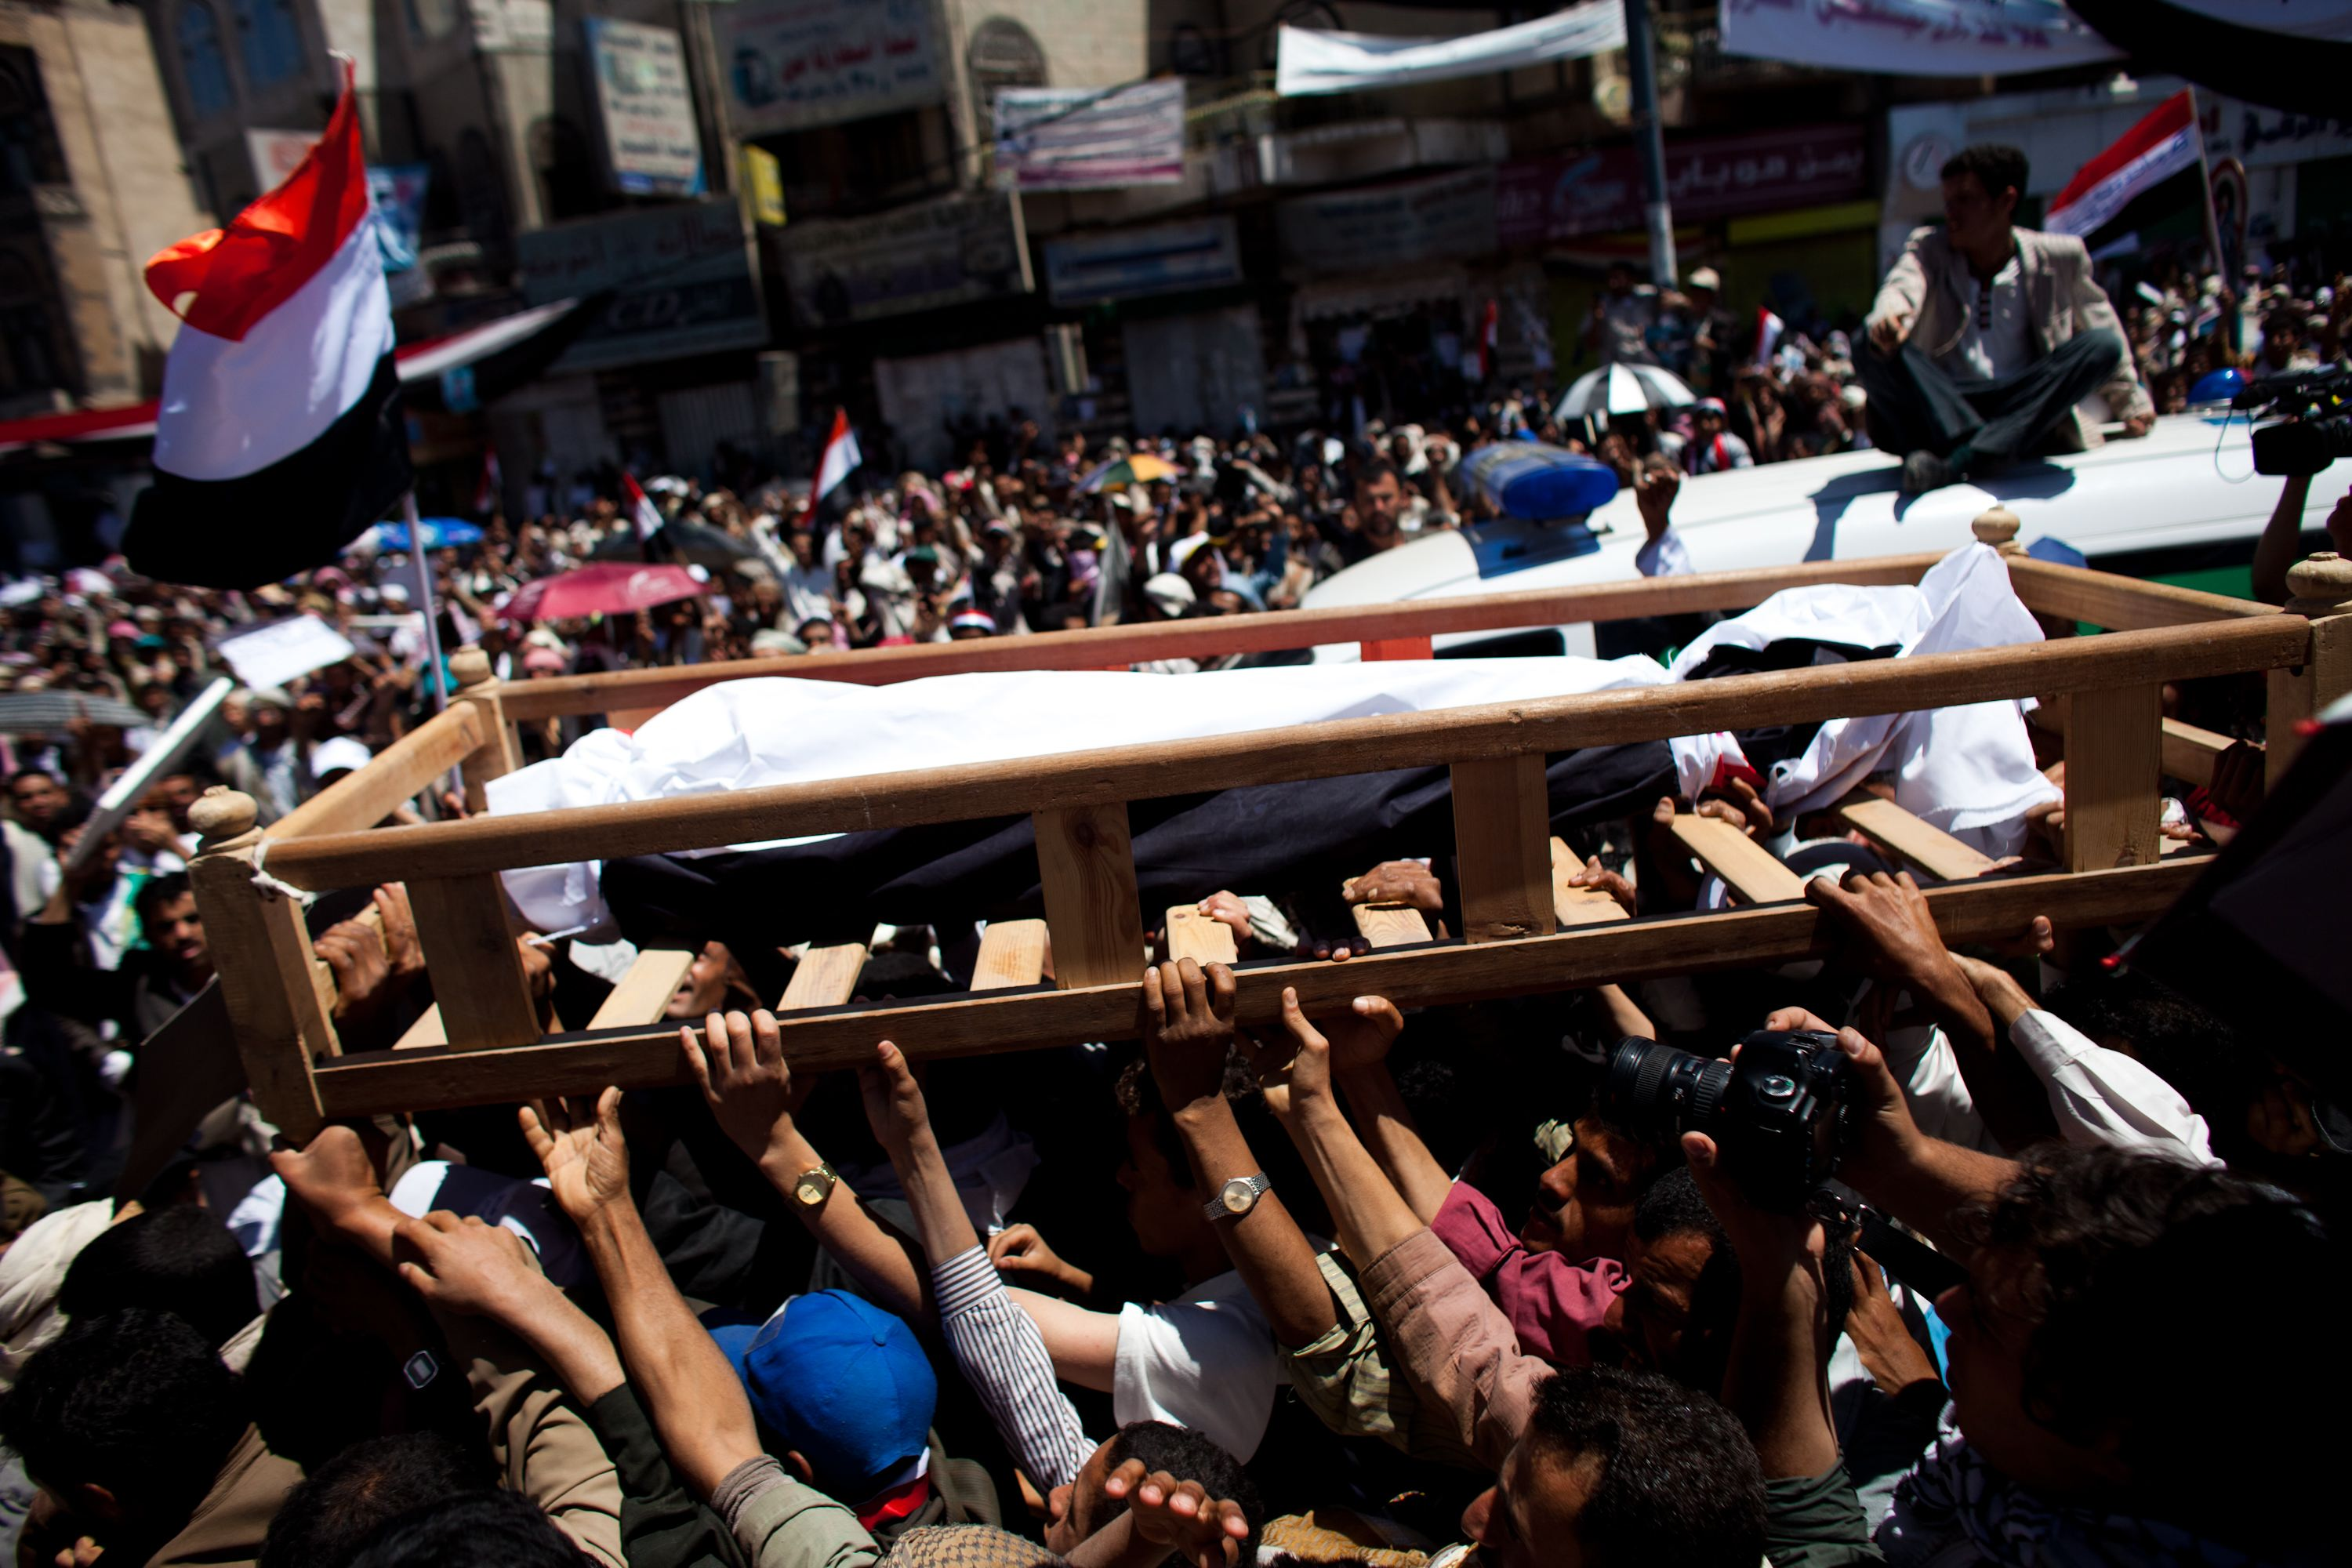 The body of a man killed during clashes with police is moved to a stage during a memorial service at the anti-government protest site in front of the University of Sana on March 11, 2011 in Sana, Yemen. Thousands of Yemenis have been protesting around the country calling for the ouster of President Ali Abdullah Saleh, who has been in power for 32 years.